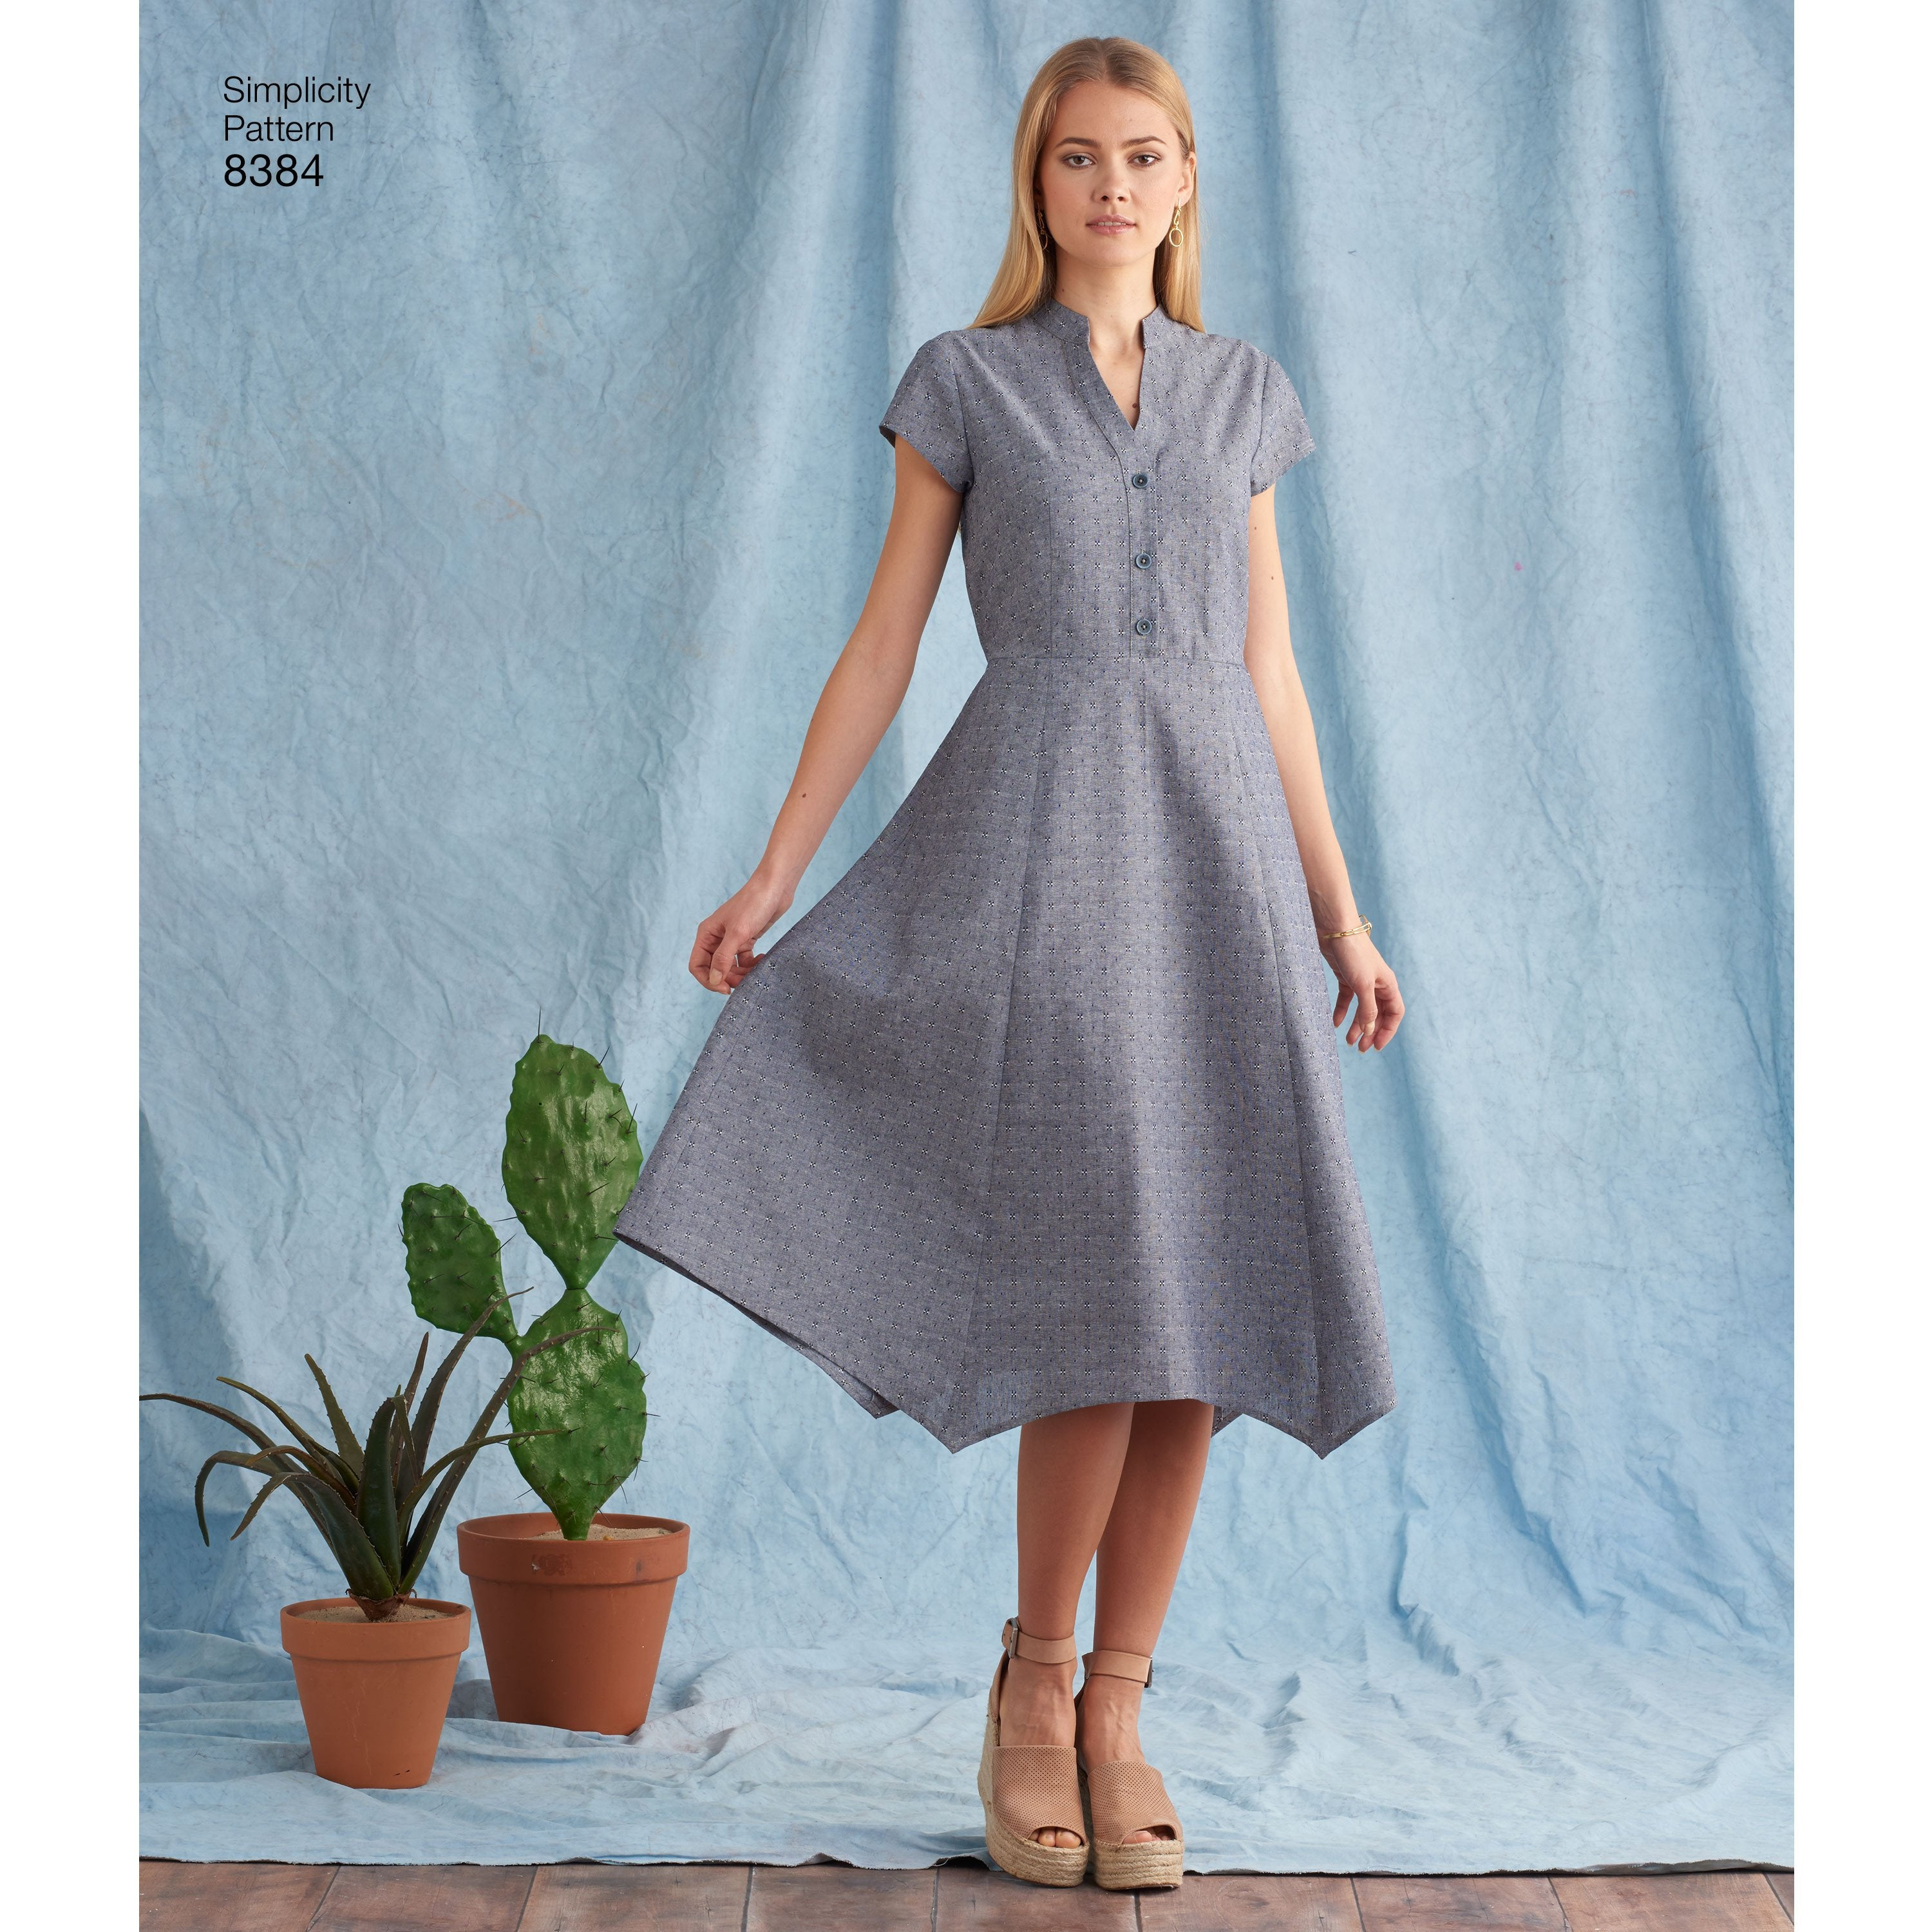 Shirt dress in a variety of lengths and hemlines